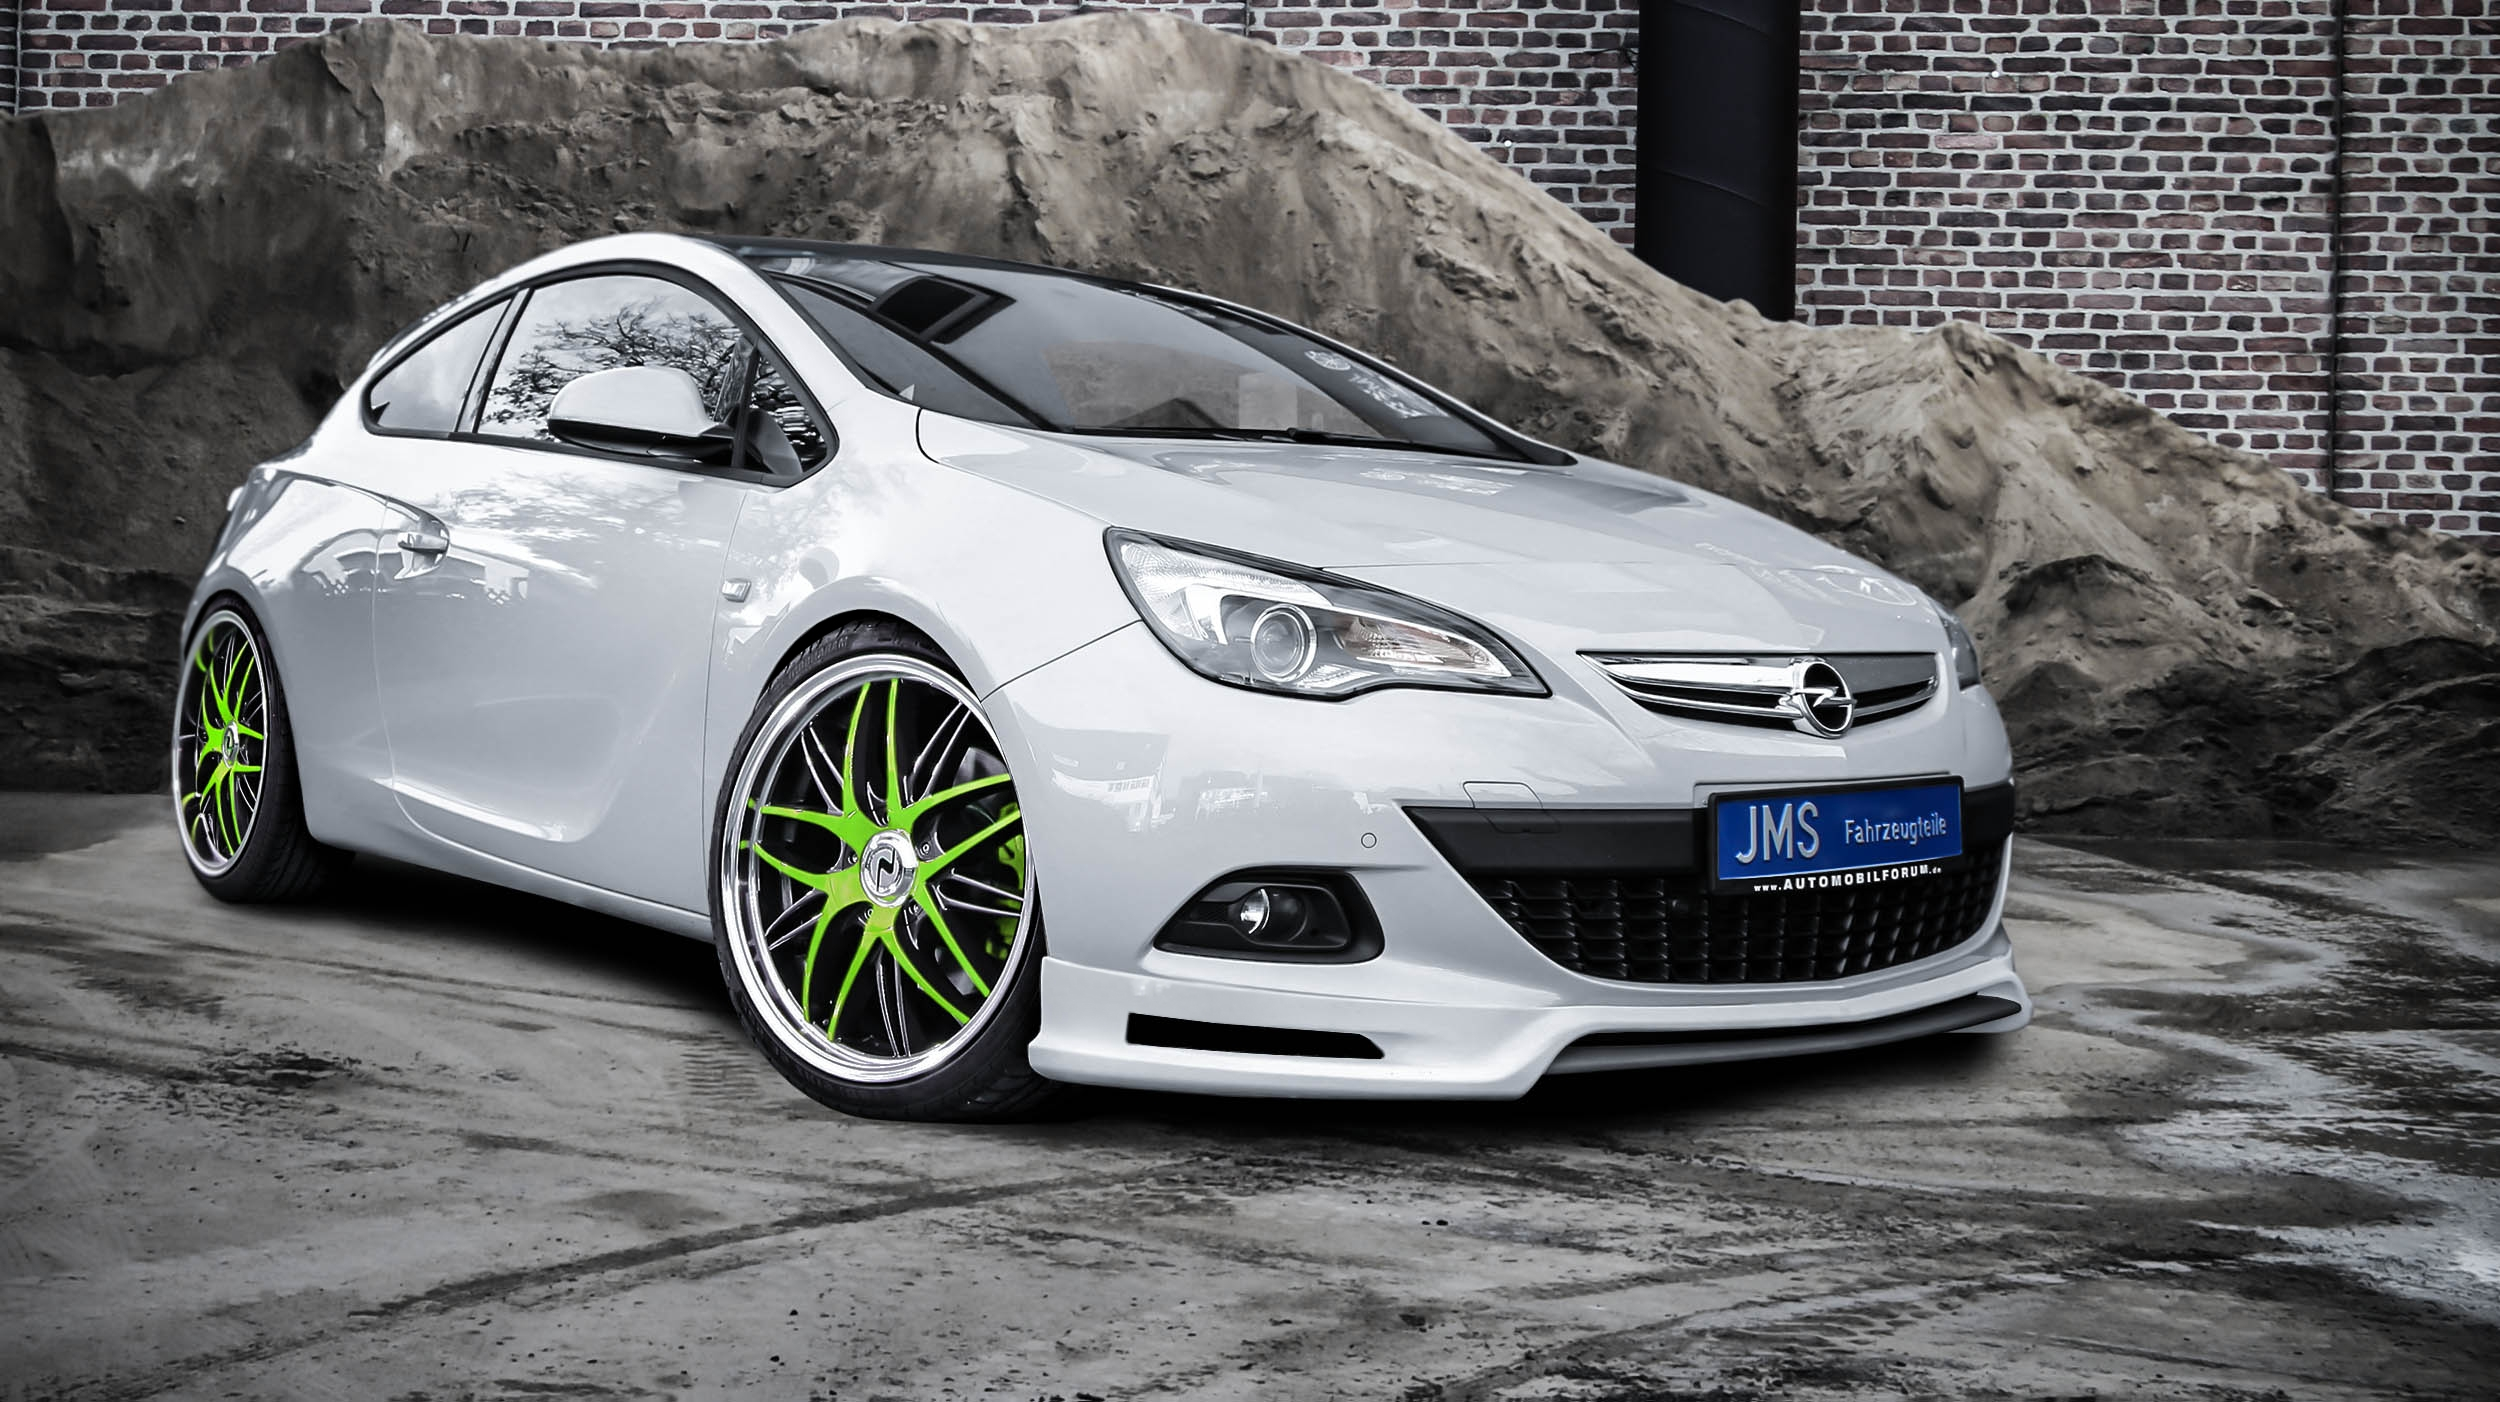 2013 Jms Opel Astra J Gtc Coupe Tuning Wallpaper 2500x1402 82131 Wallpaperup